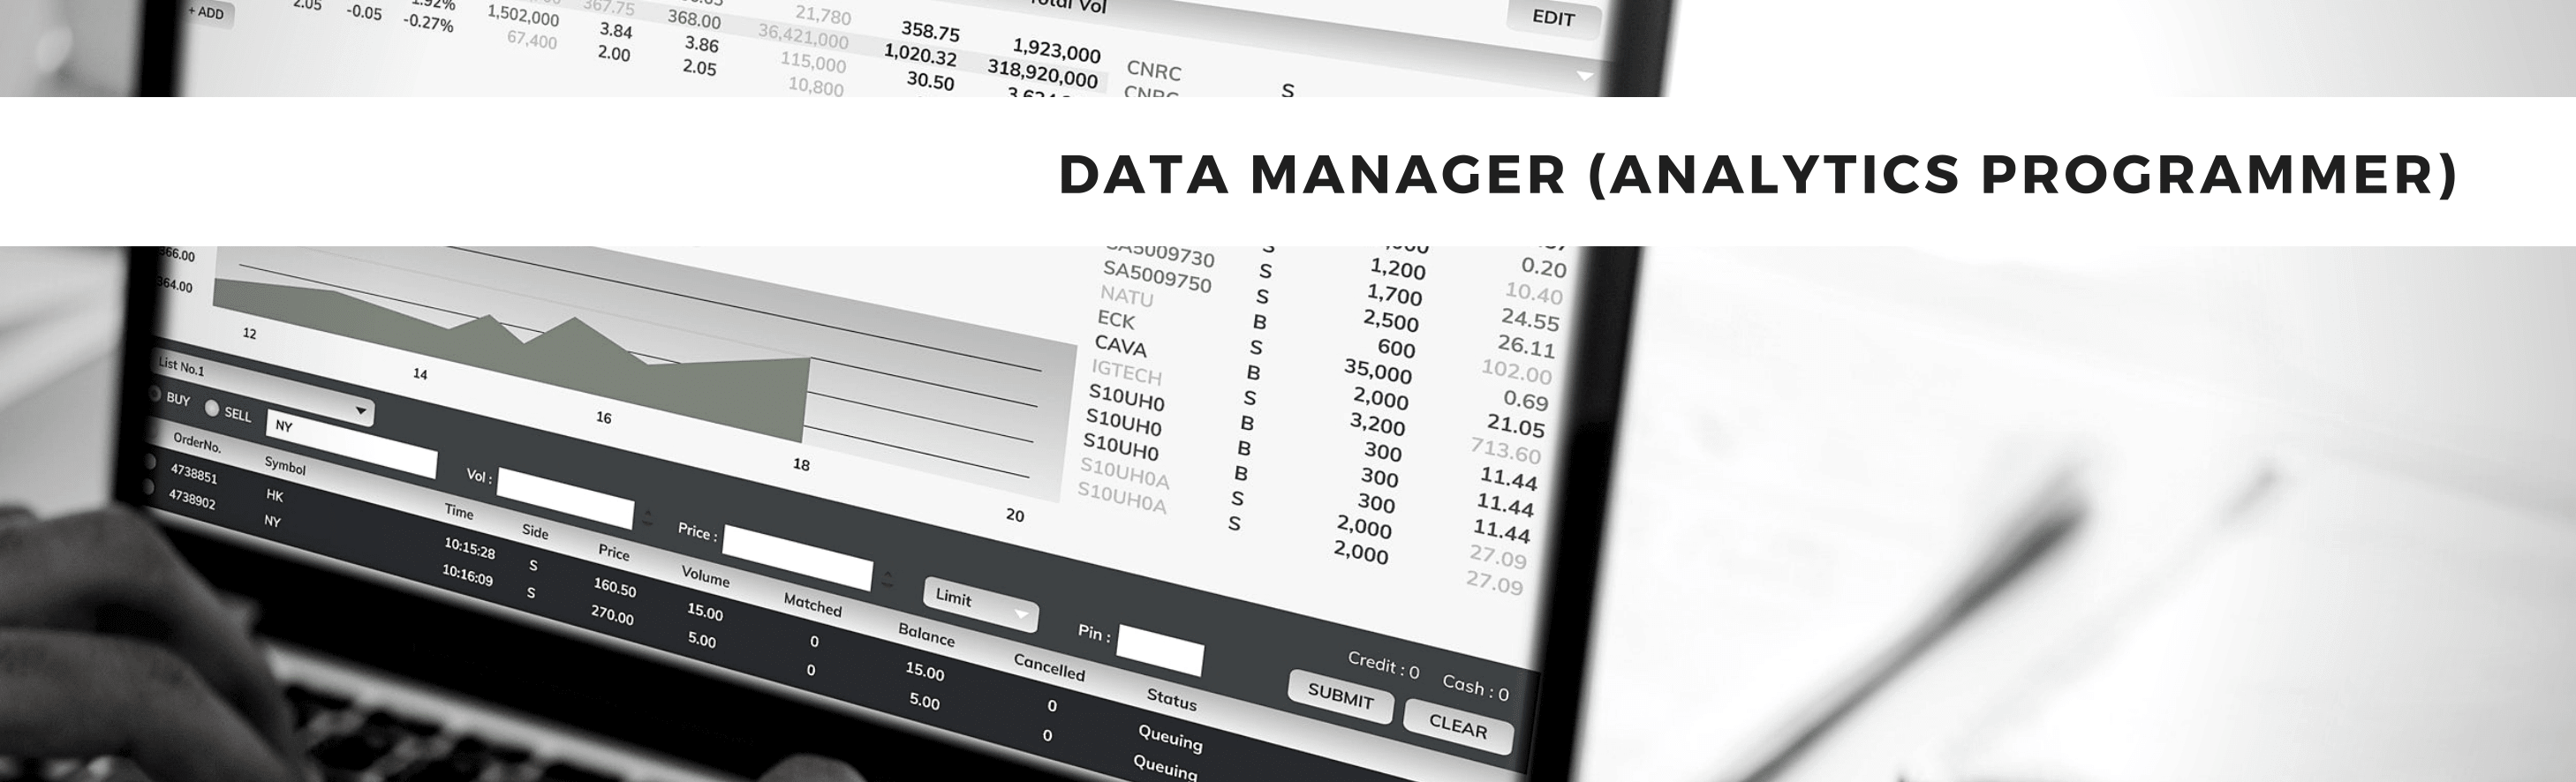 SAS Data Manager Analytic Programmer